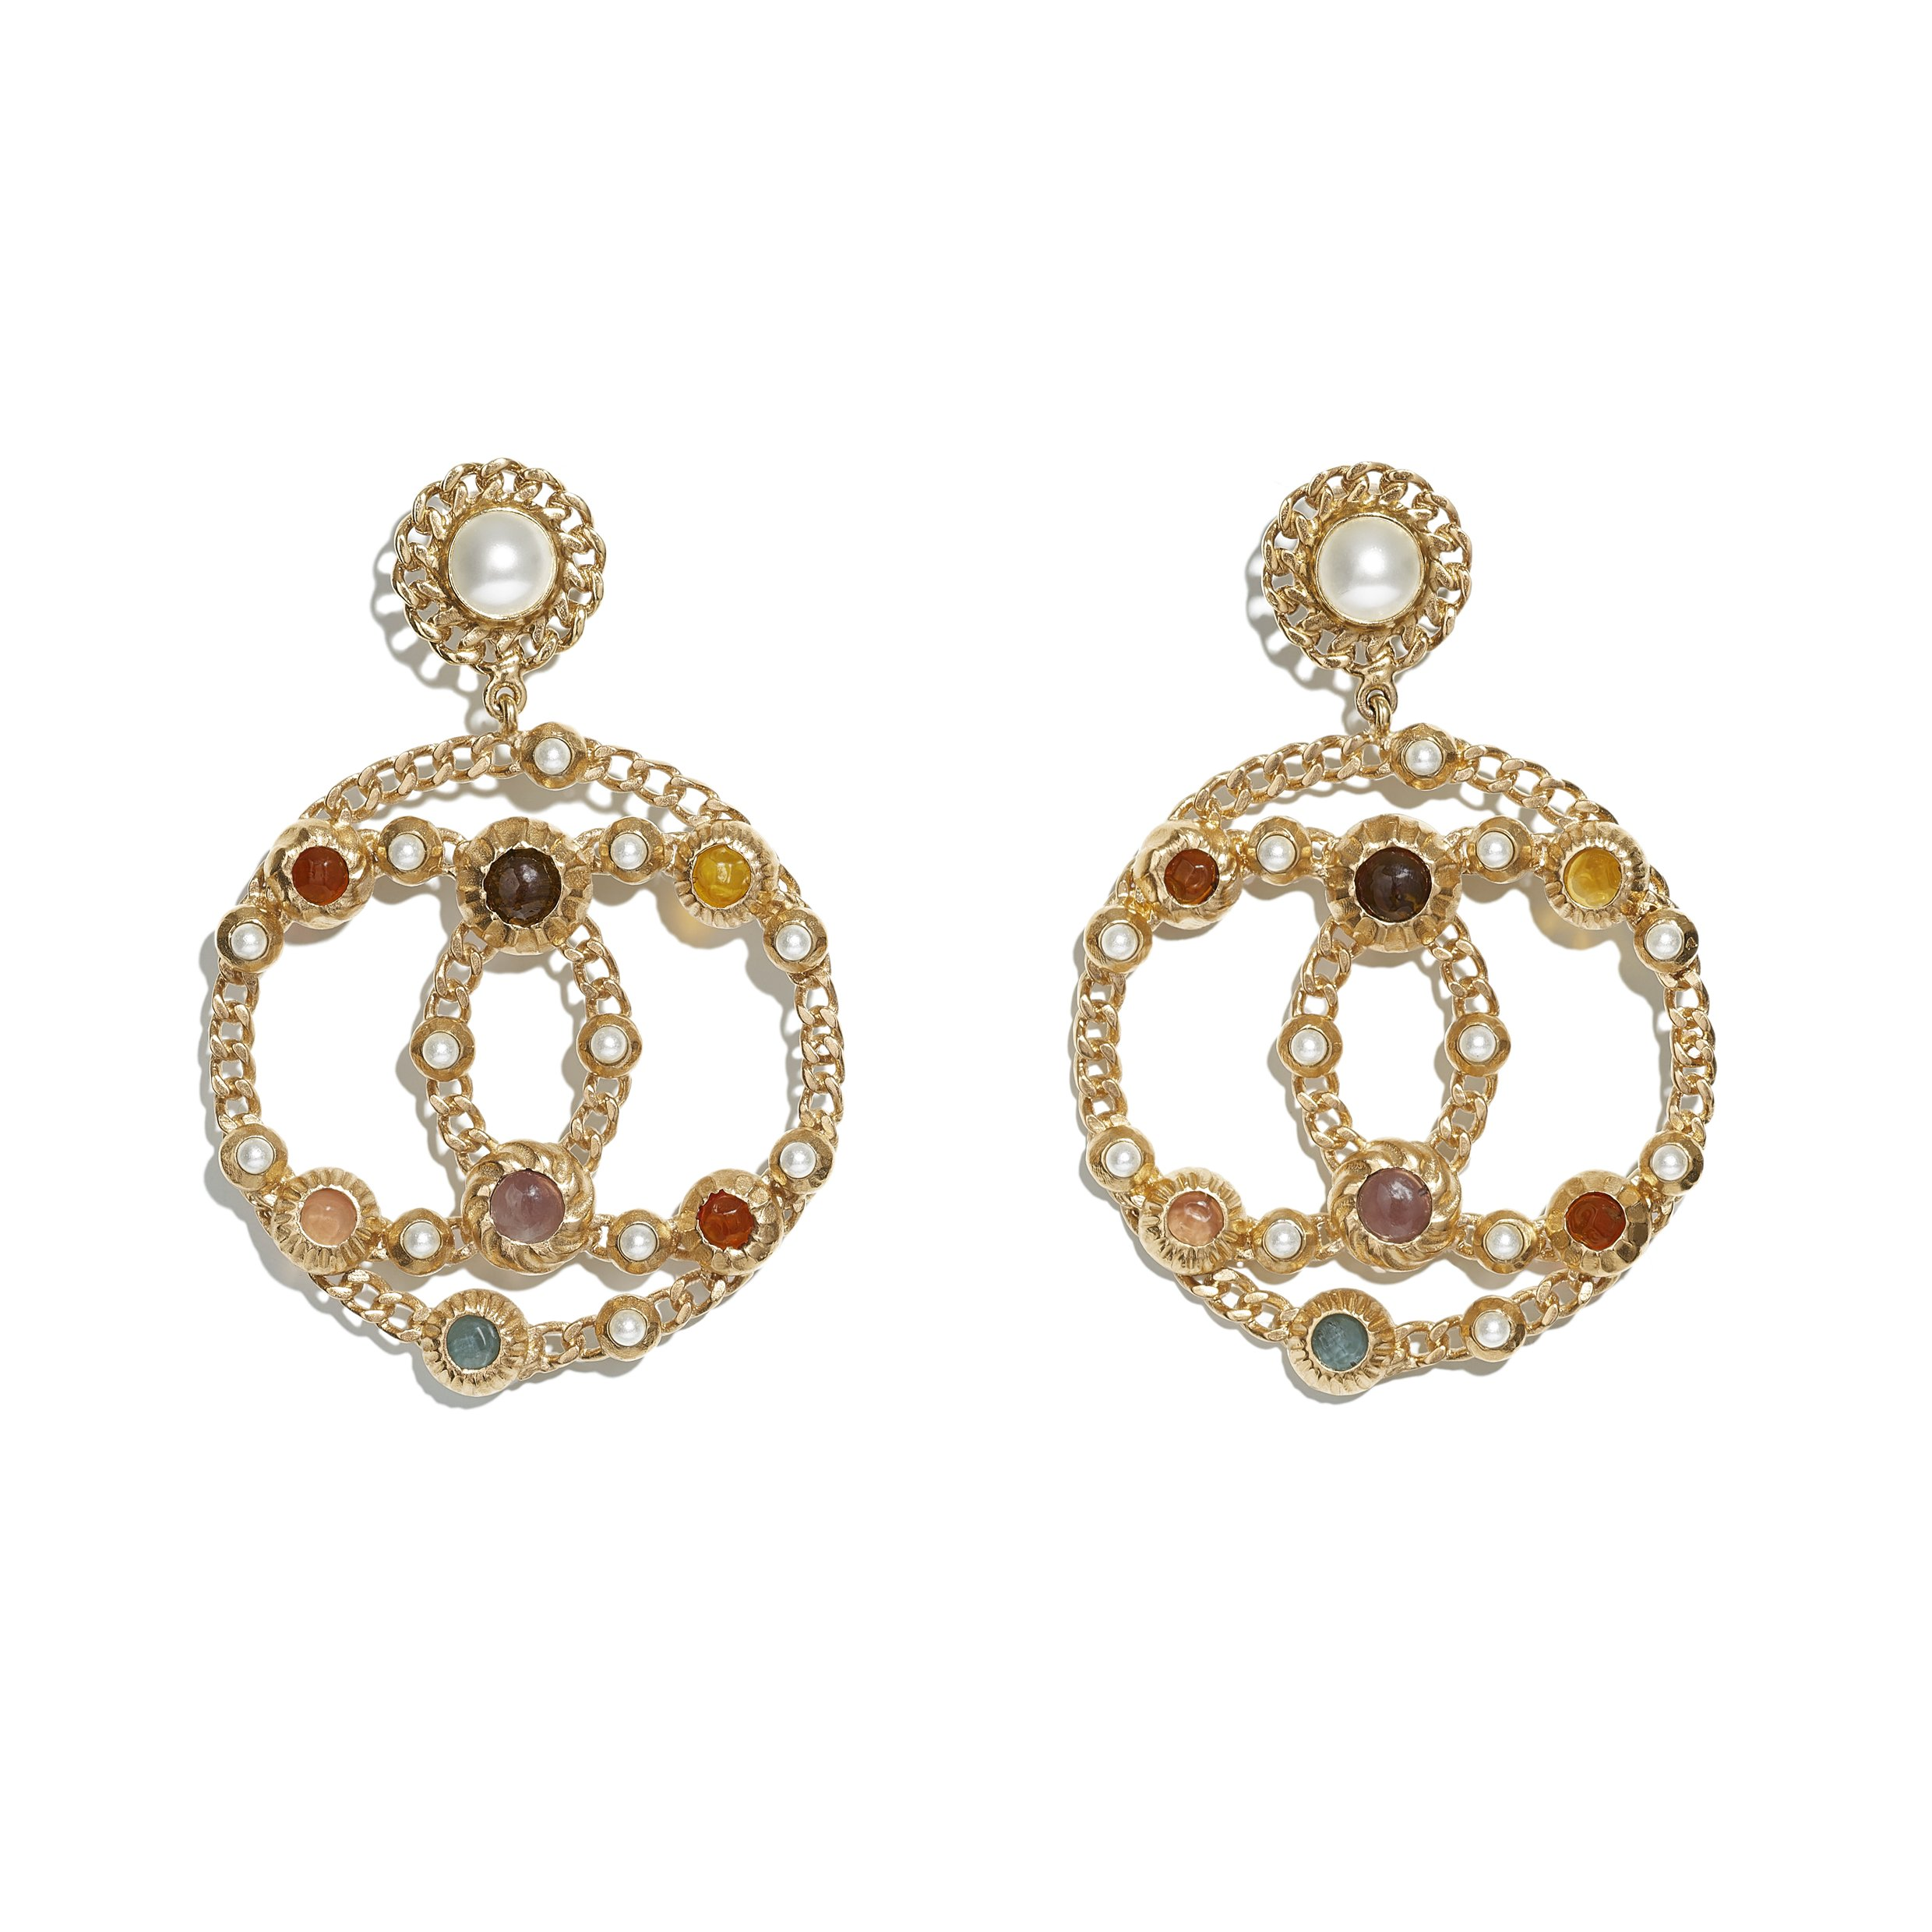 AB0270-Y47391-Z8820 - Earrings in gold metal with glass beads